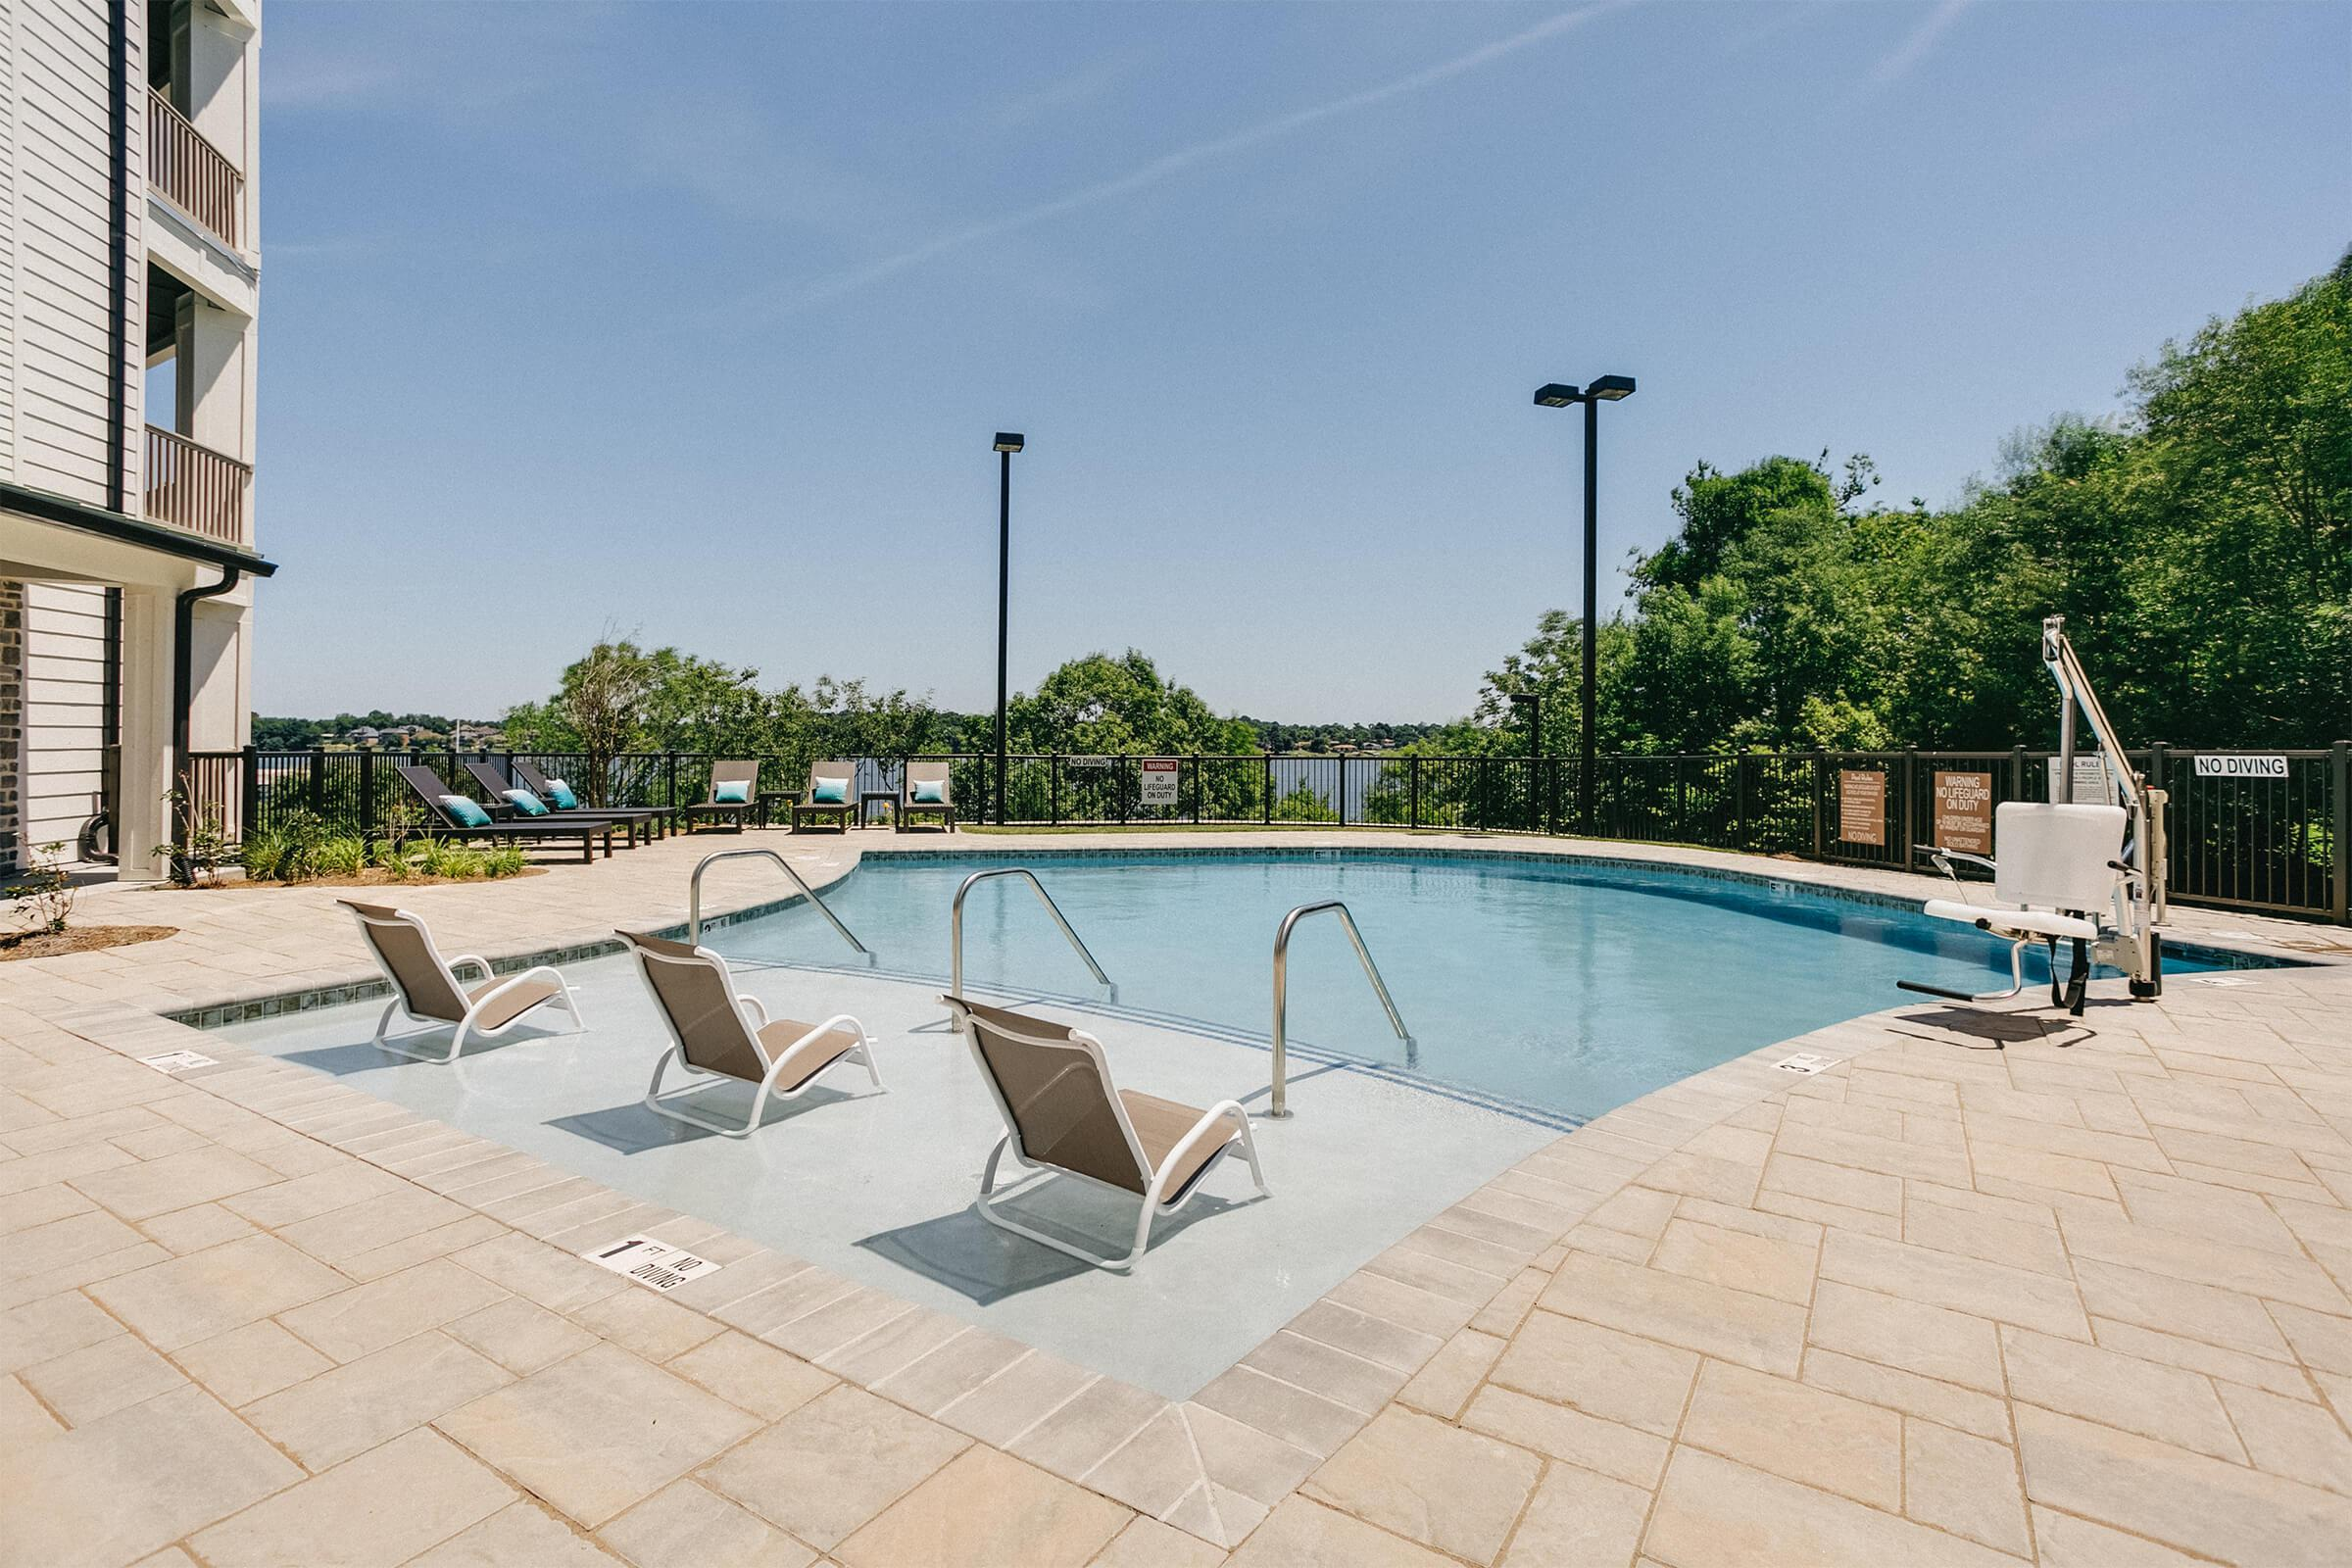 Enjoy the shimmering swimming pool at The Residence at Old Hickory Lake